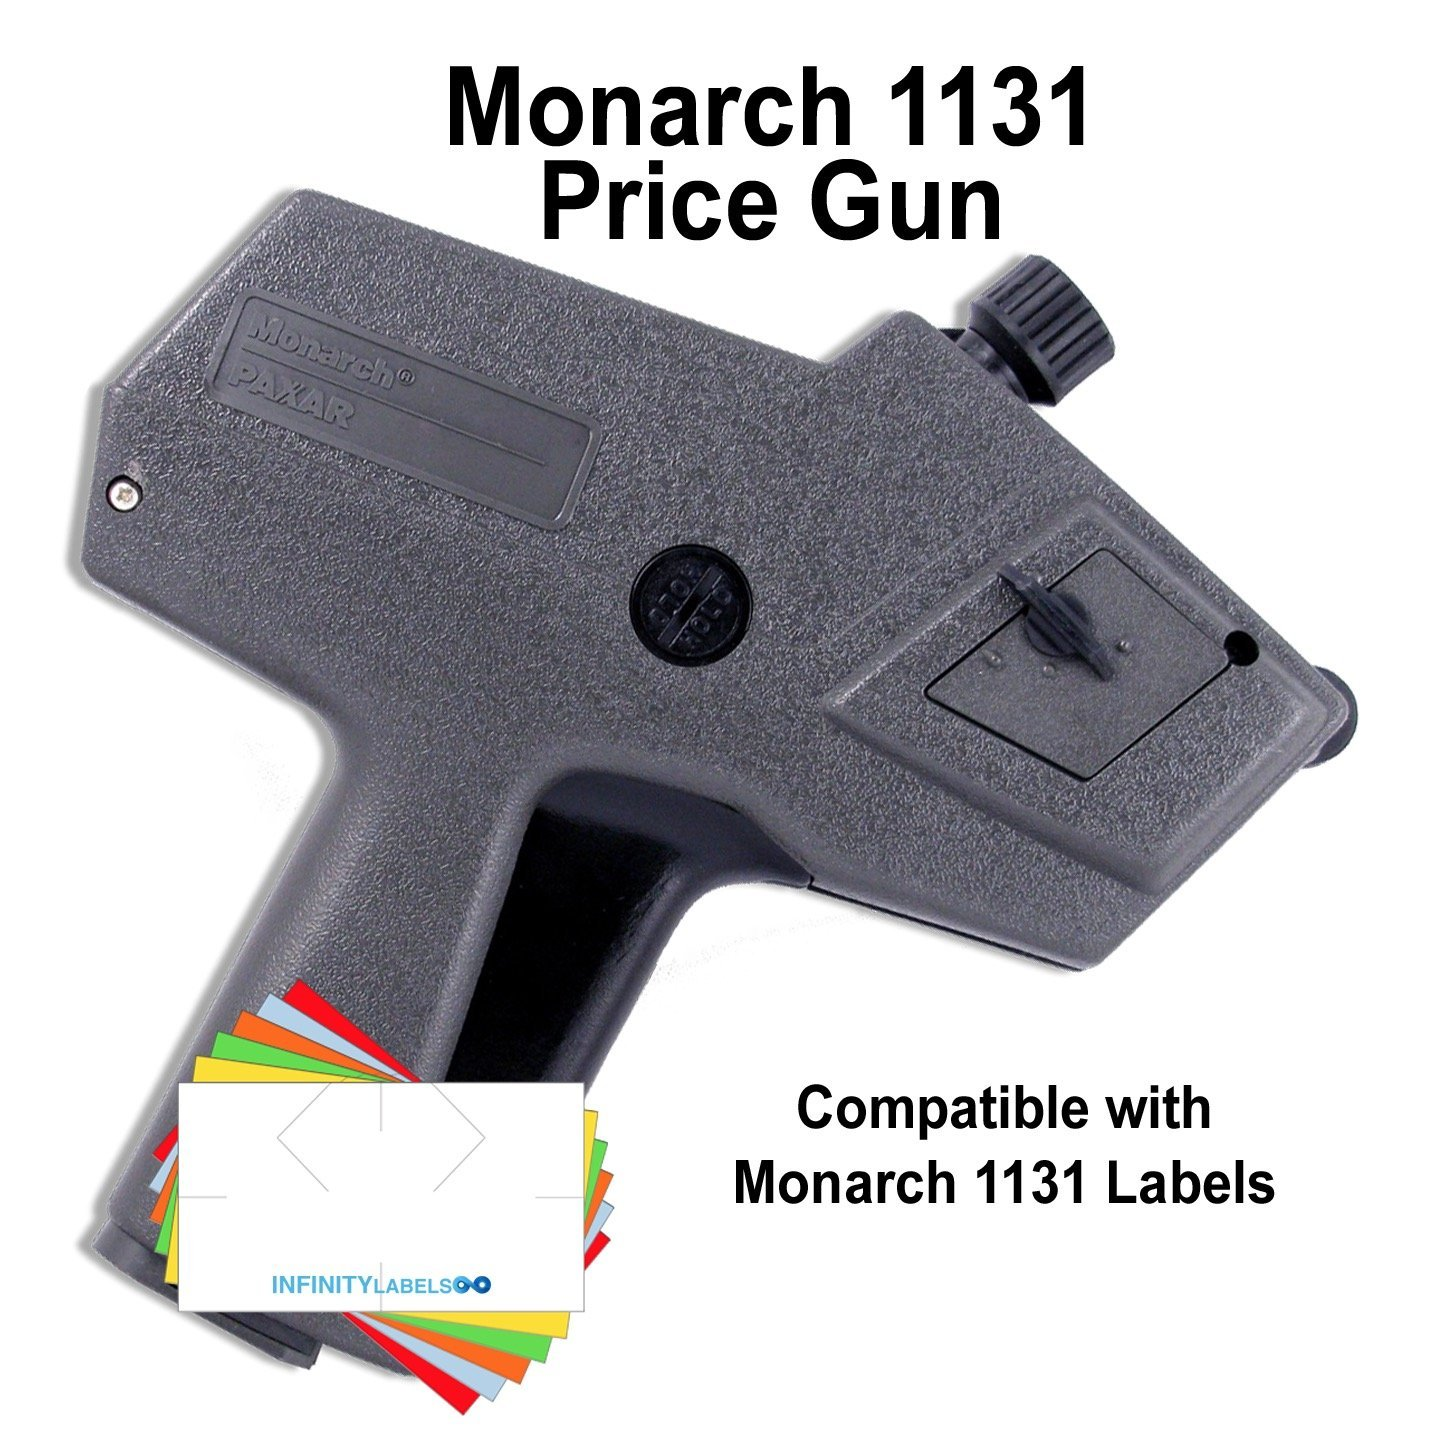 Monarch Price Guns (10): 1131 - BULK PRICING [1 Line / 8 BOLD Characters]